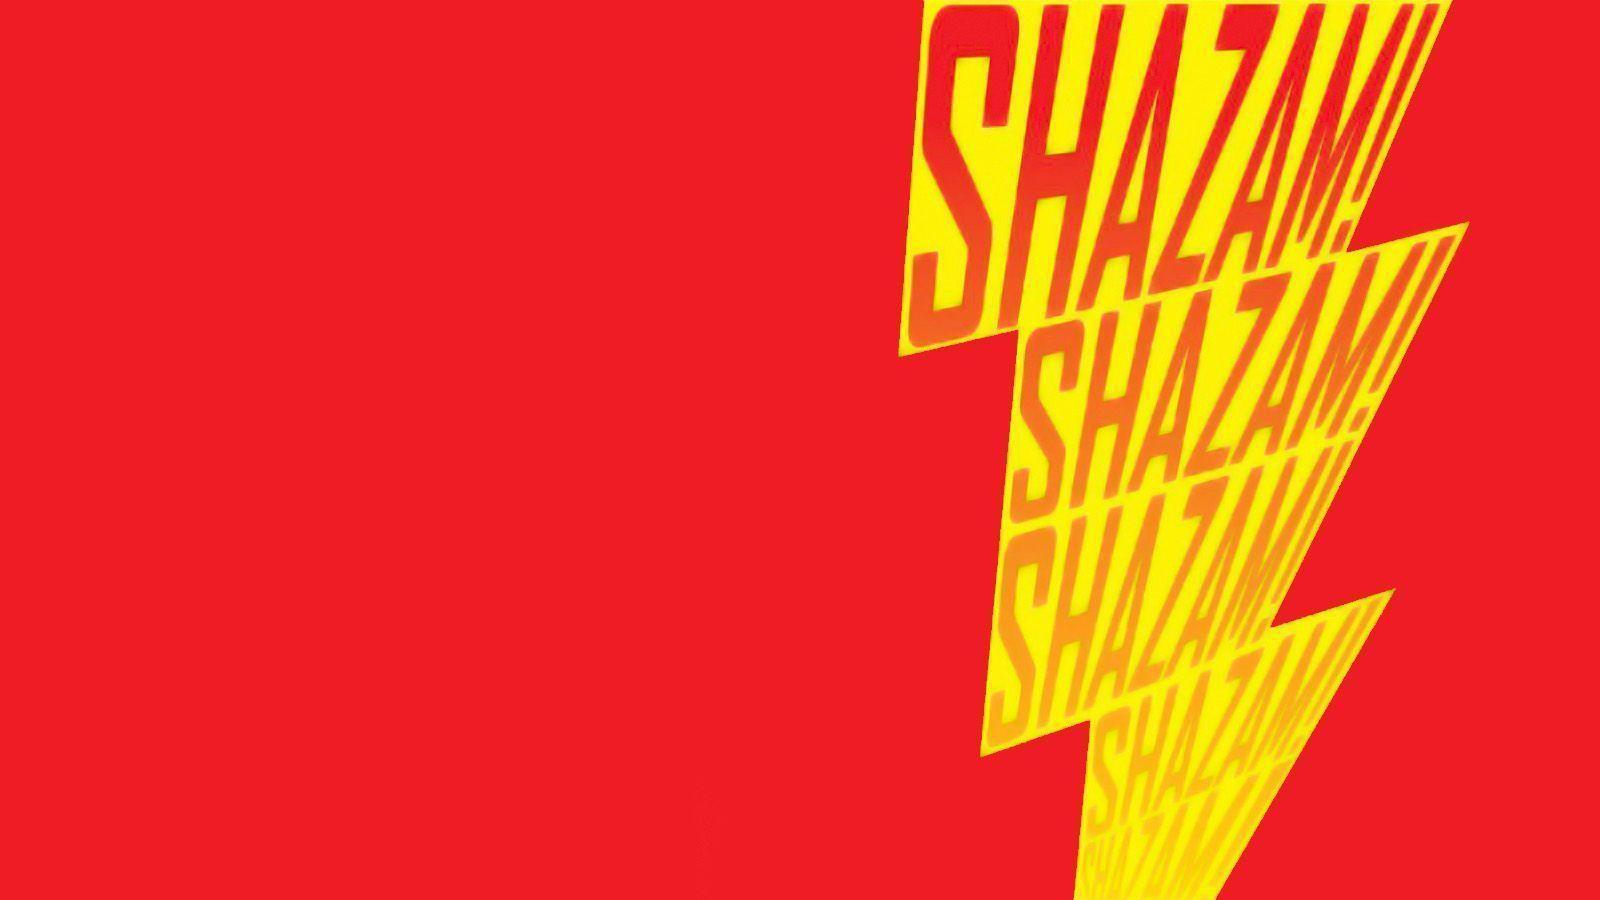 Shazam Wallpapers Wallpaper Cave